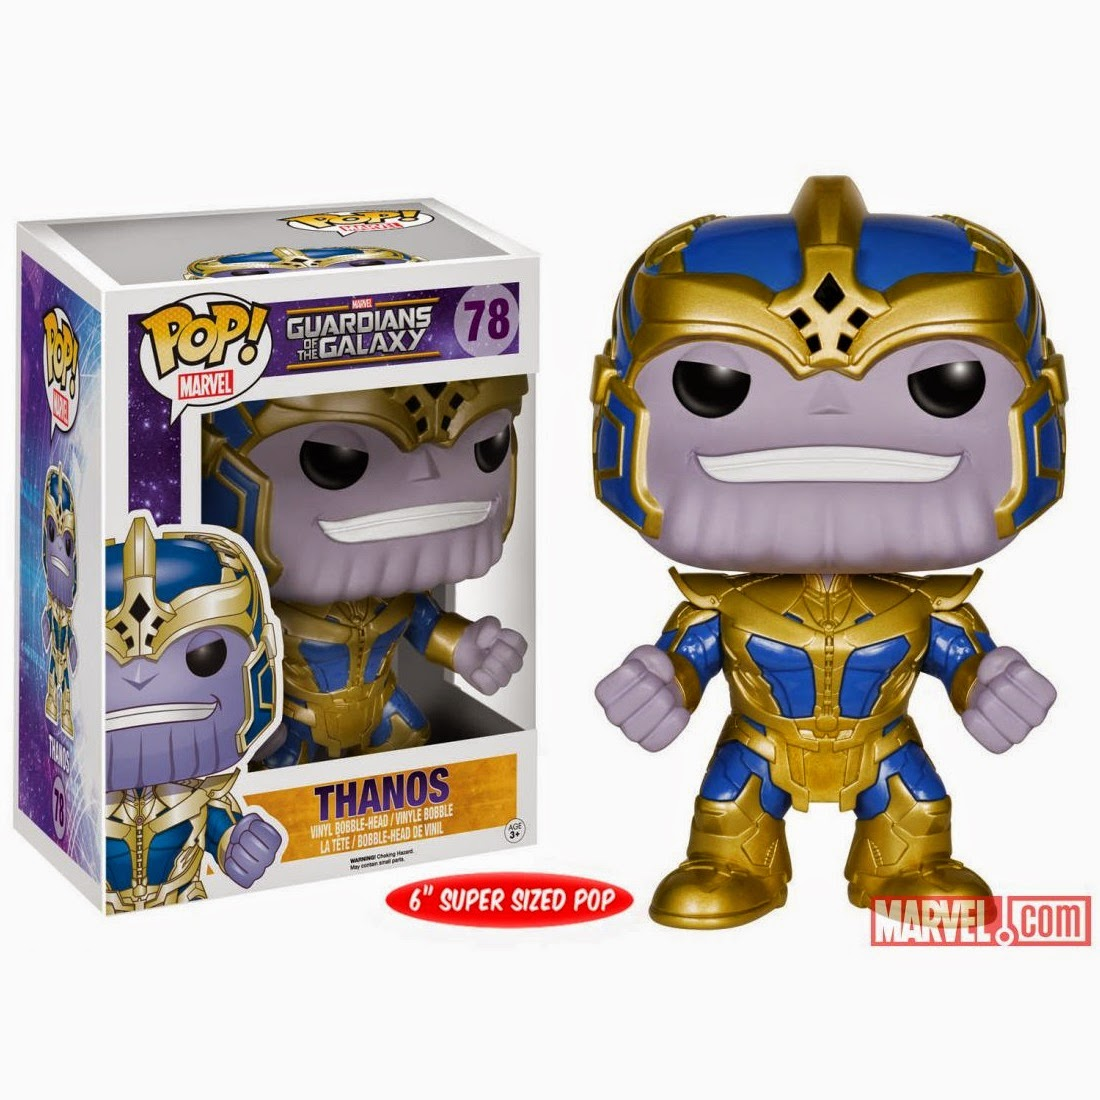 Guardians of the Galaxy Pop! Marvel Vinyl Figure Villains Series - Thanos